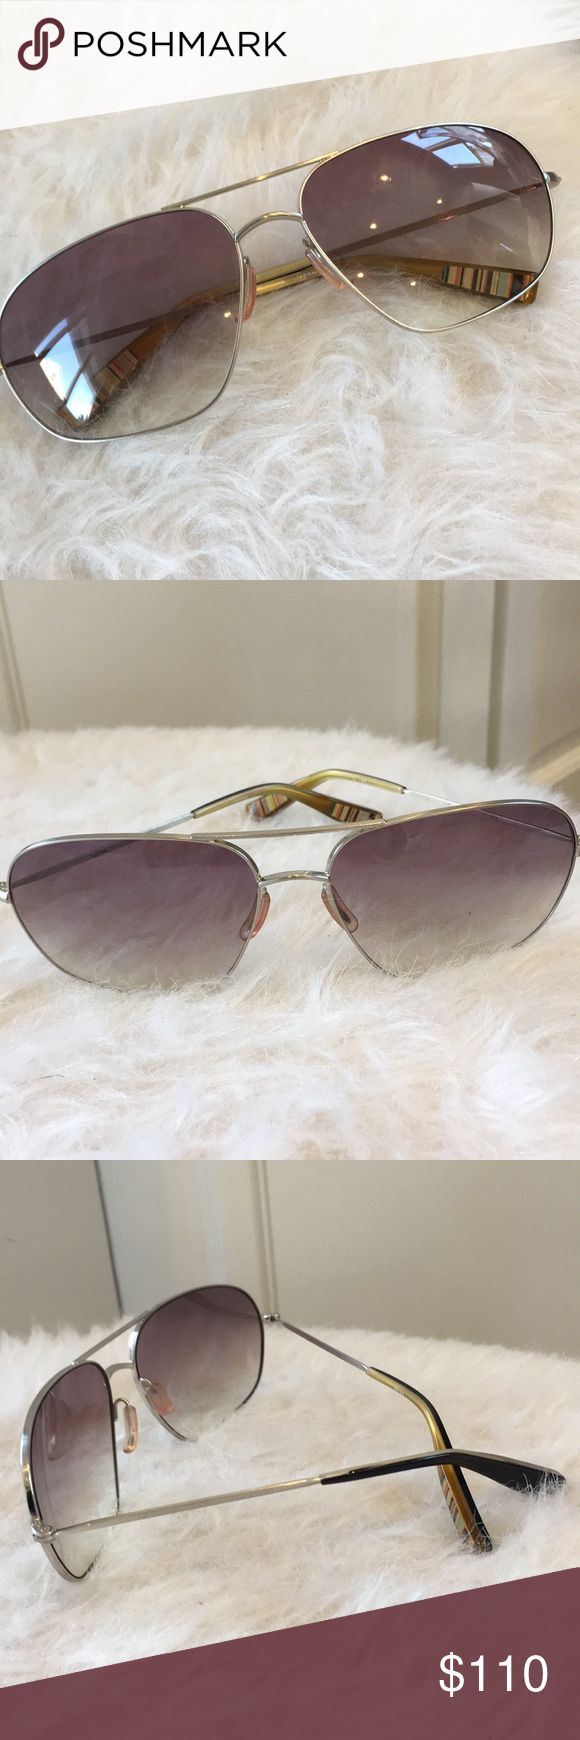 Paul Smith sunglasses Beautiful unisex Paul Smith aviator sunglasses. Barely worn. No scratches or wear. No case included. Paul Smith Accessories Glasses